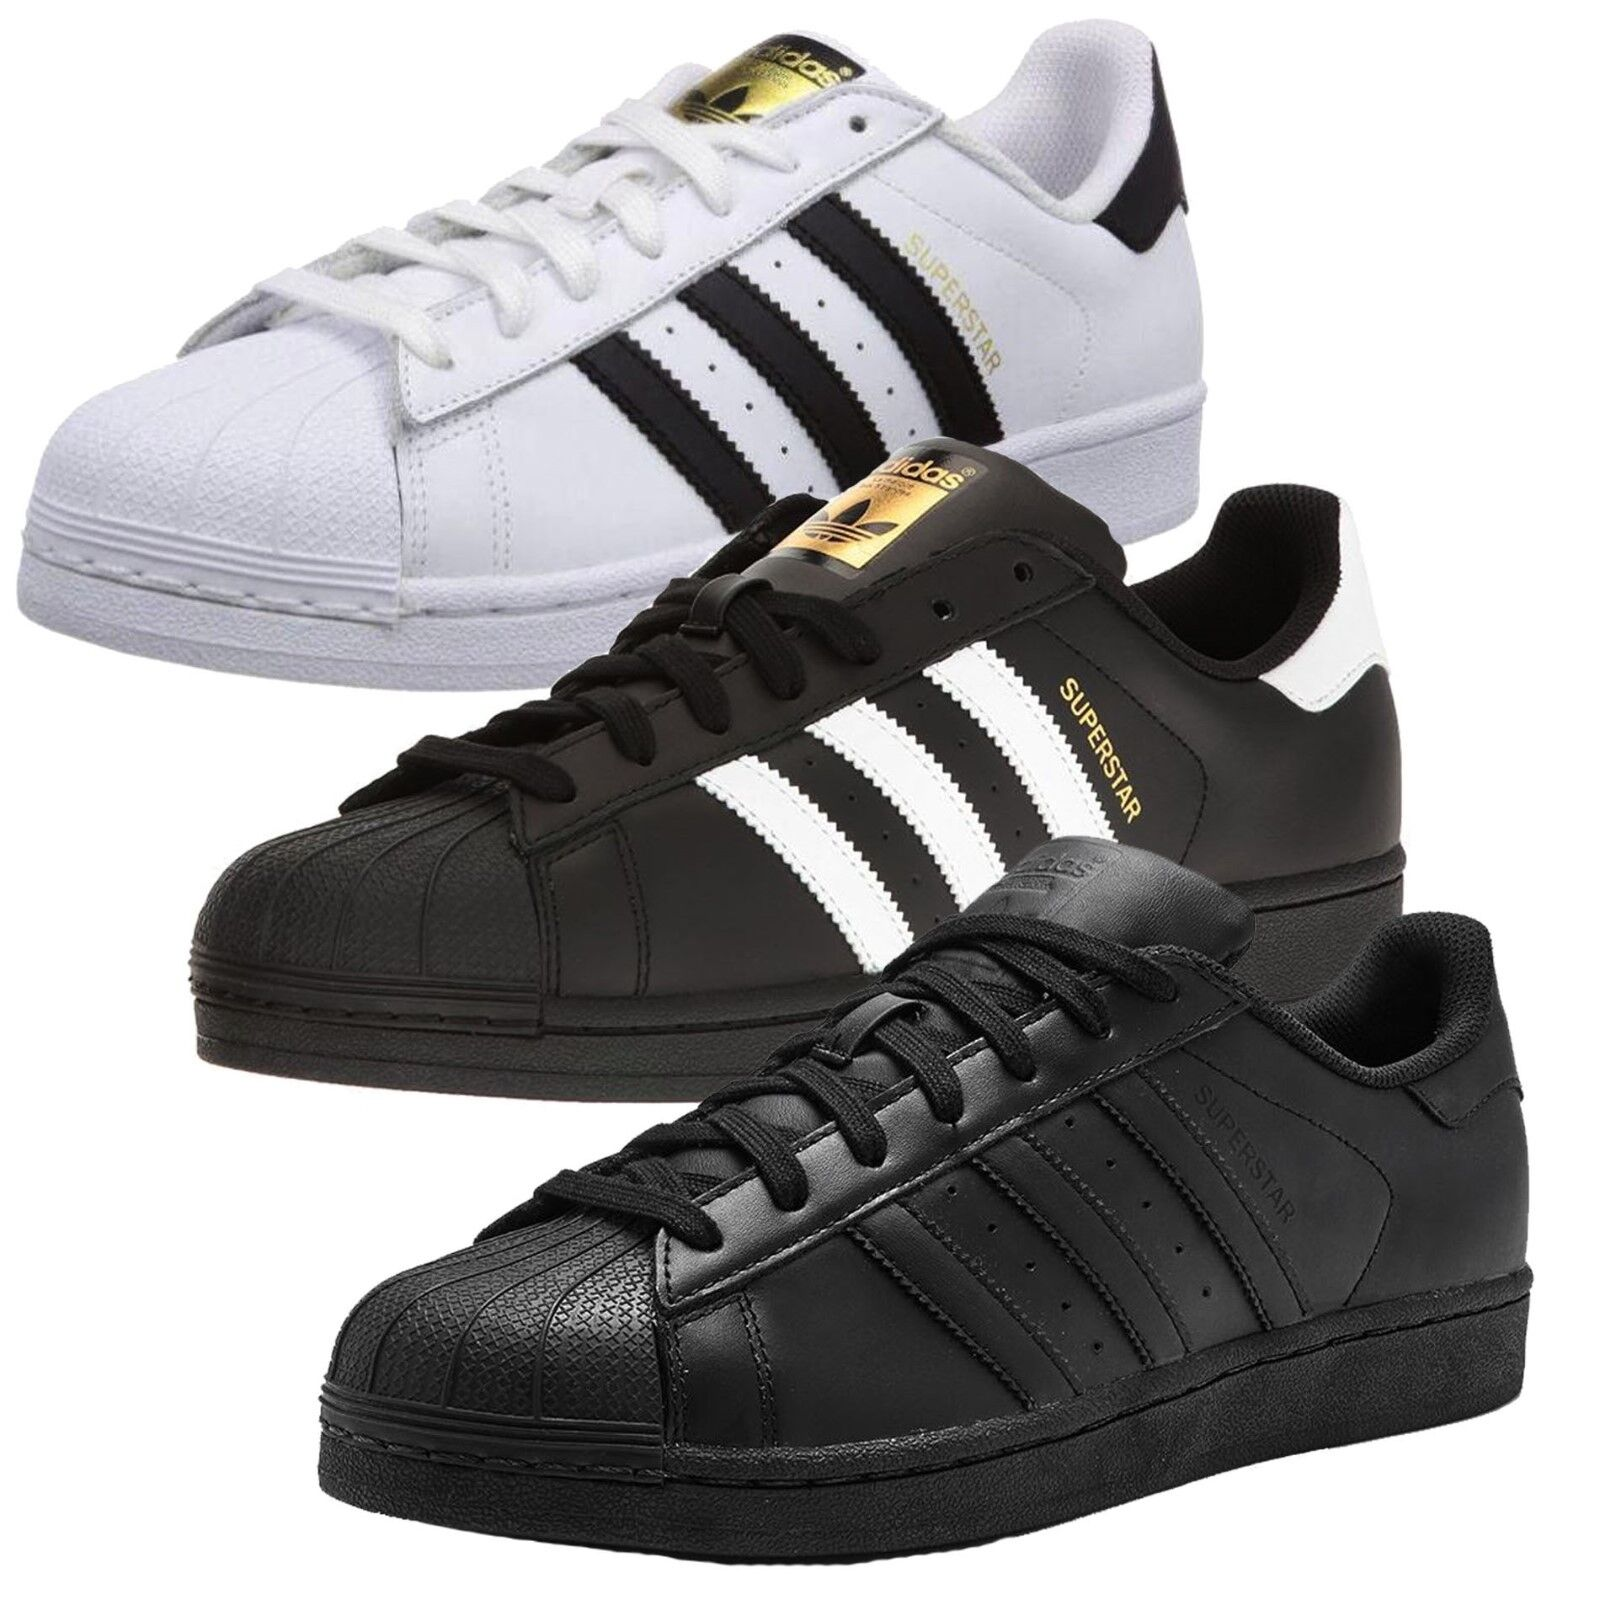 ✅24hr DELIVERY✅ Adidas Originals Superstar Leather Mens  Casual Trainers35% Off✅